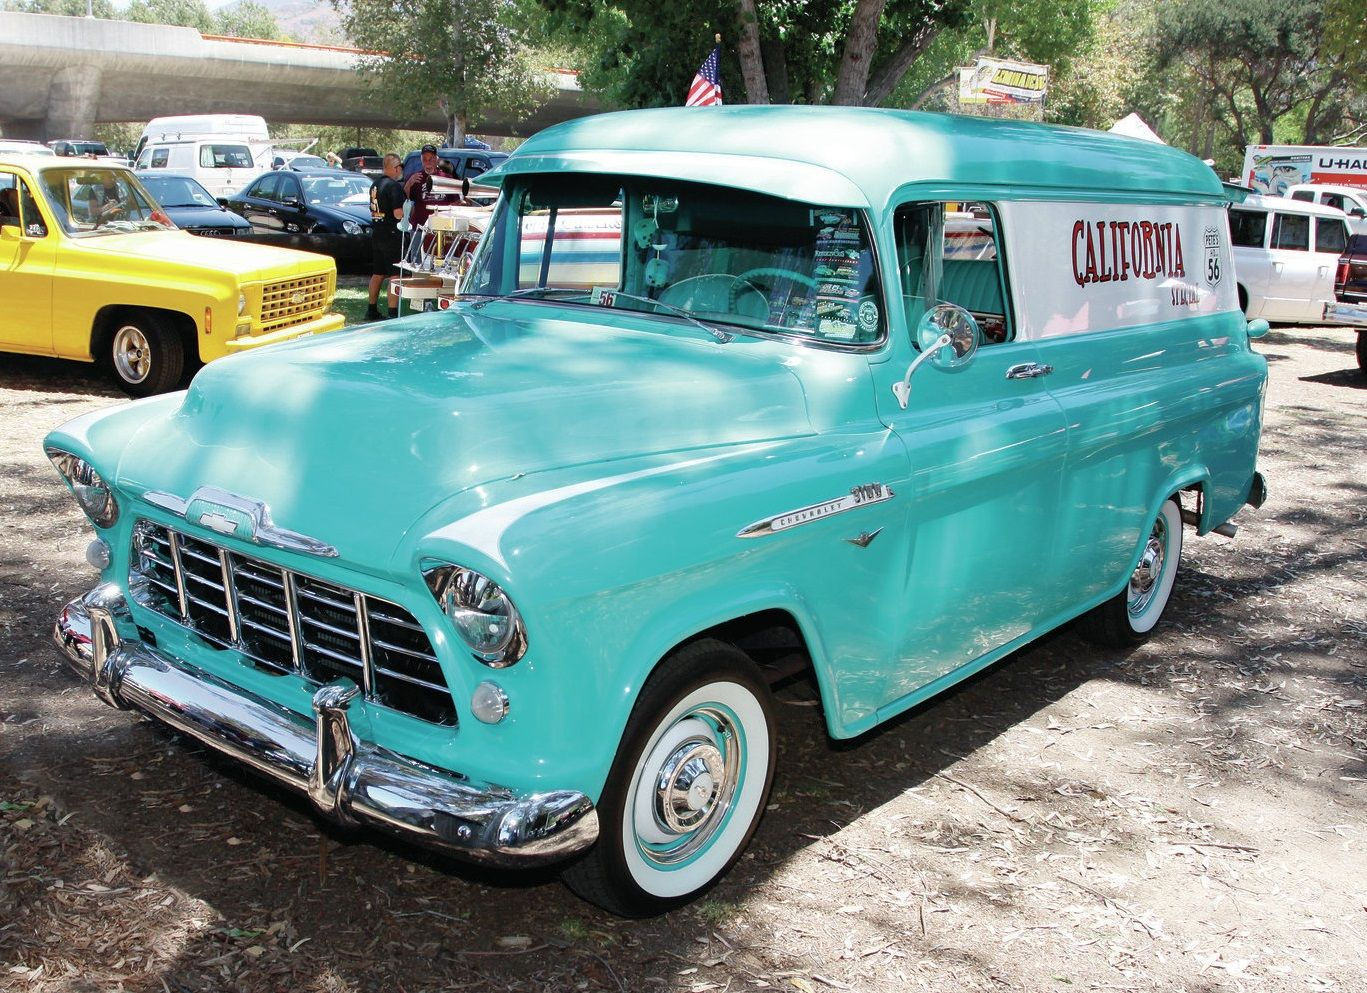 Truck 1948 chevy panel truck : 1956 Chevrolet Delivery panel truck | Panel Trucks | Pinterest ...